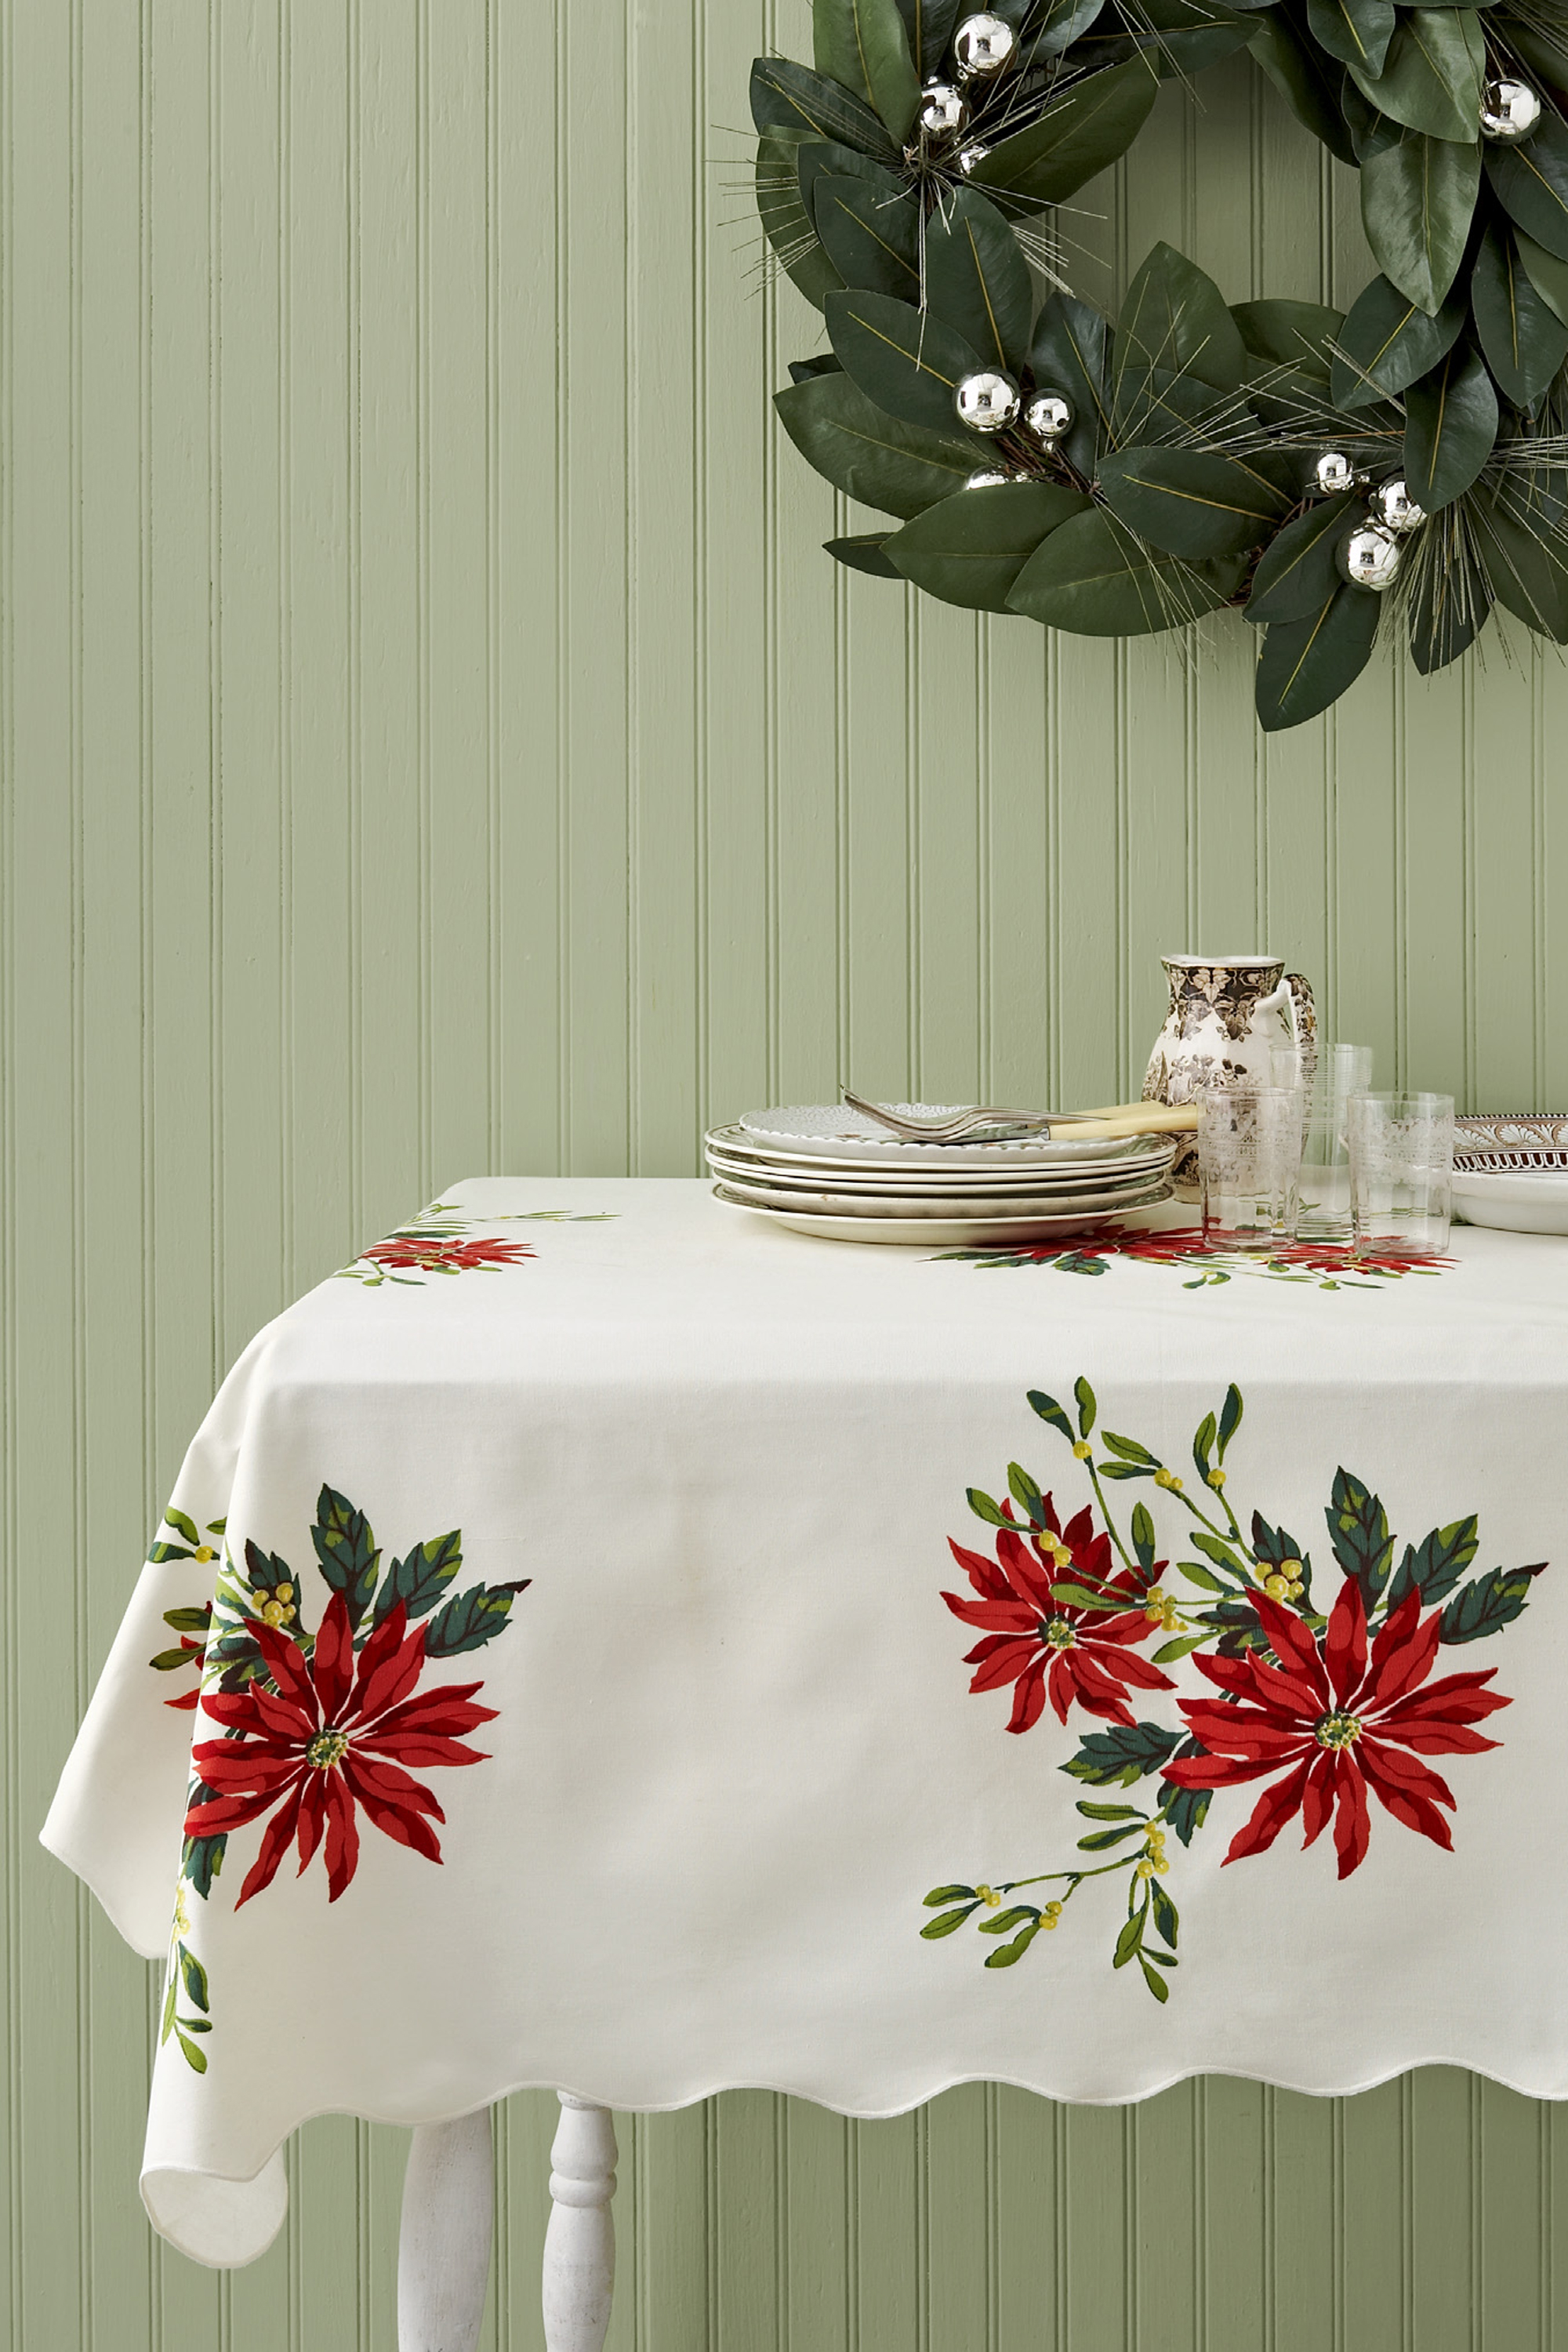 Beautiful Vintage Christmas Tablecloths And Linens   Collecting Vintage Holiday Linens